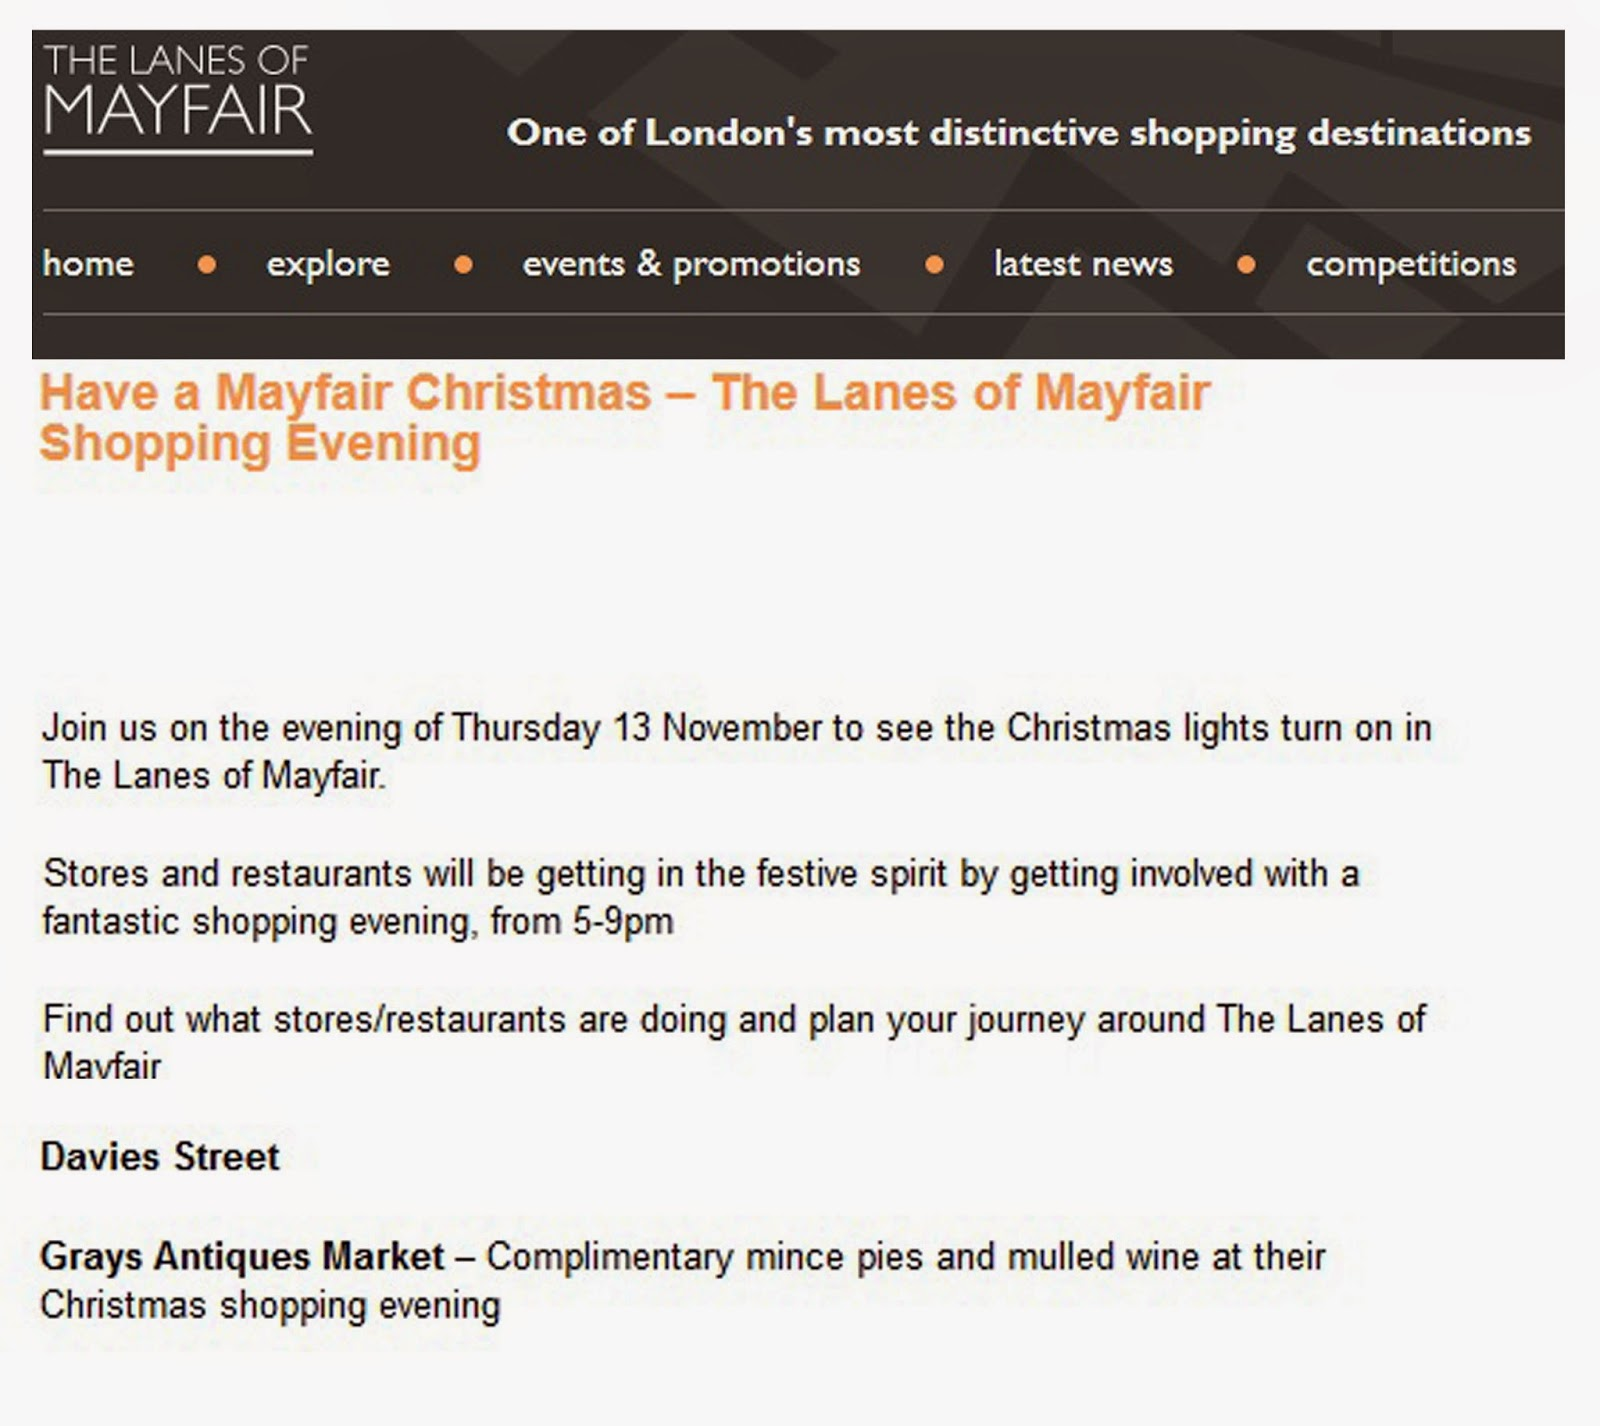 http://www.thelanesofmayfair.com/news-events-and-promotions/3788/have-a-mayfair-christmas-the-lanes-of-mayfair-shopping-evening/